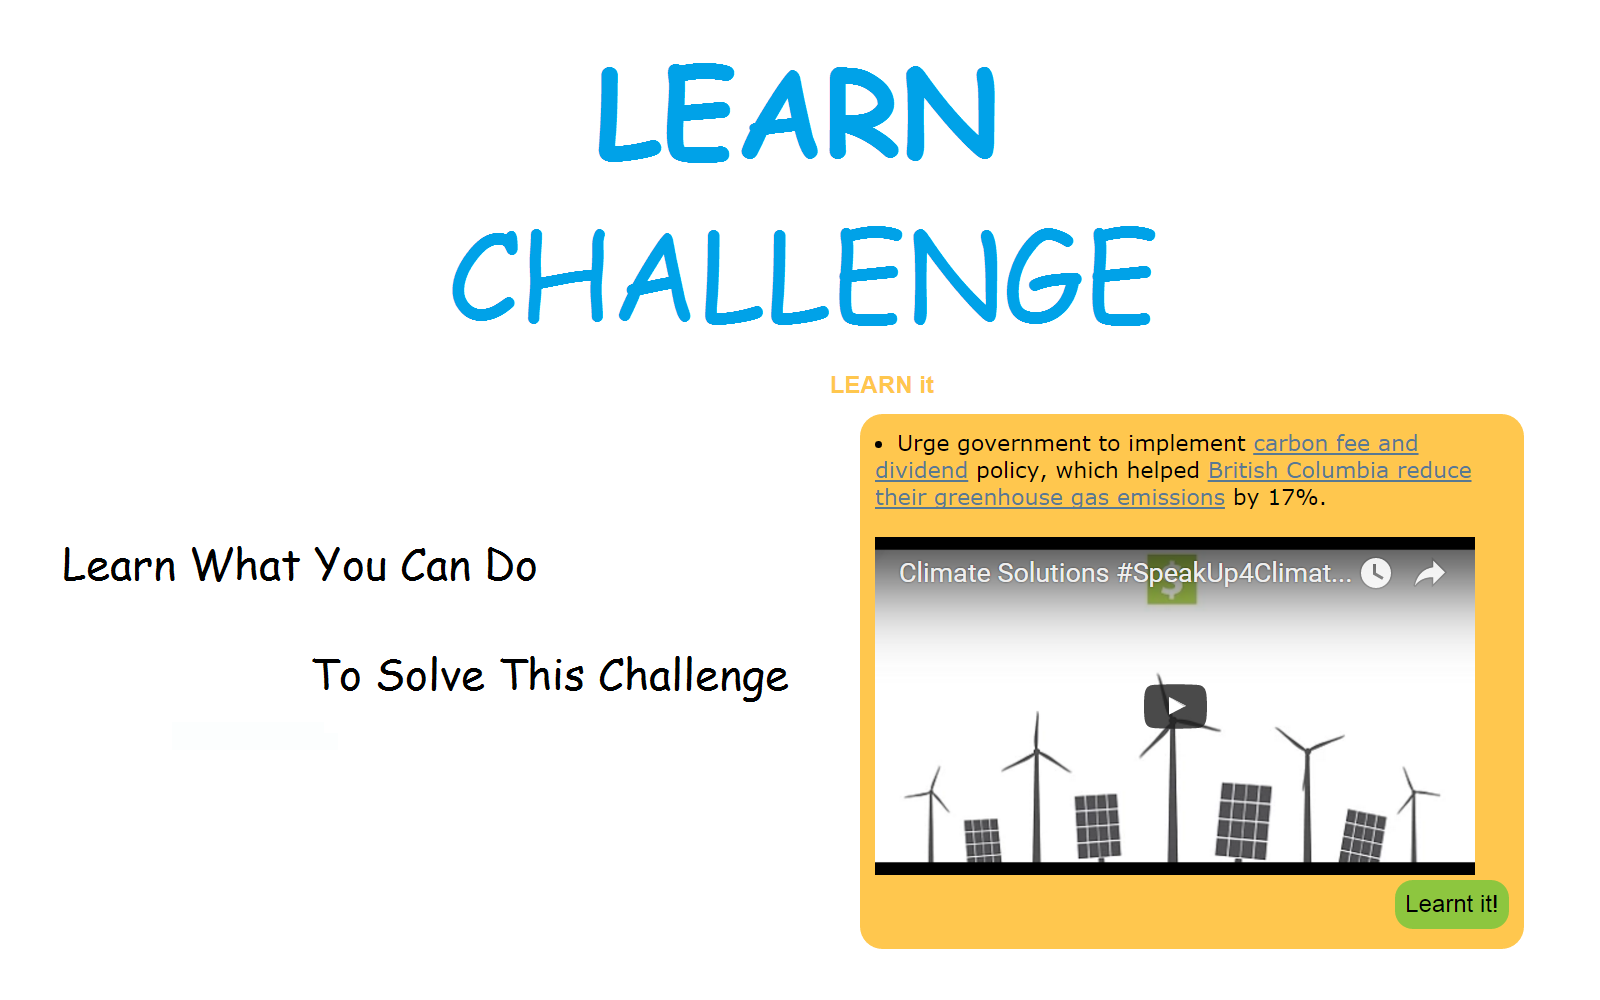 2 - Learn The Challenge